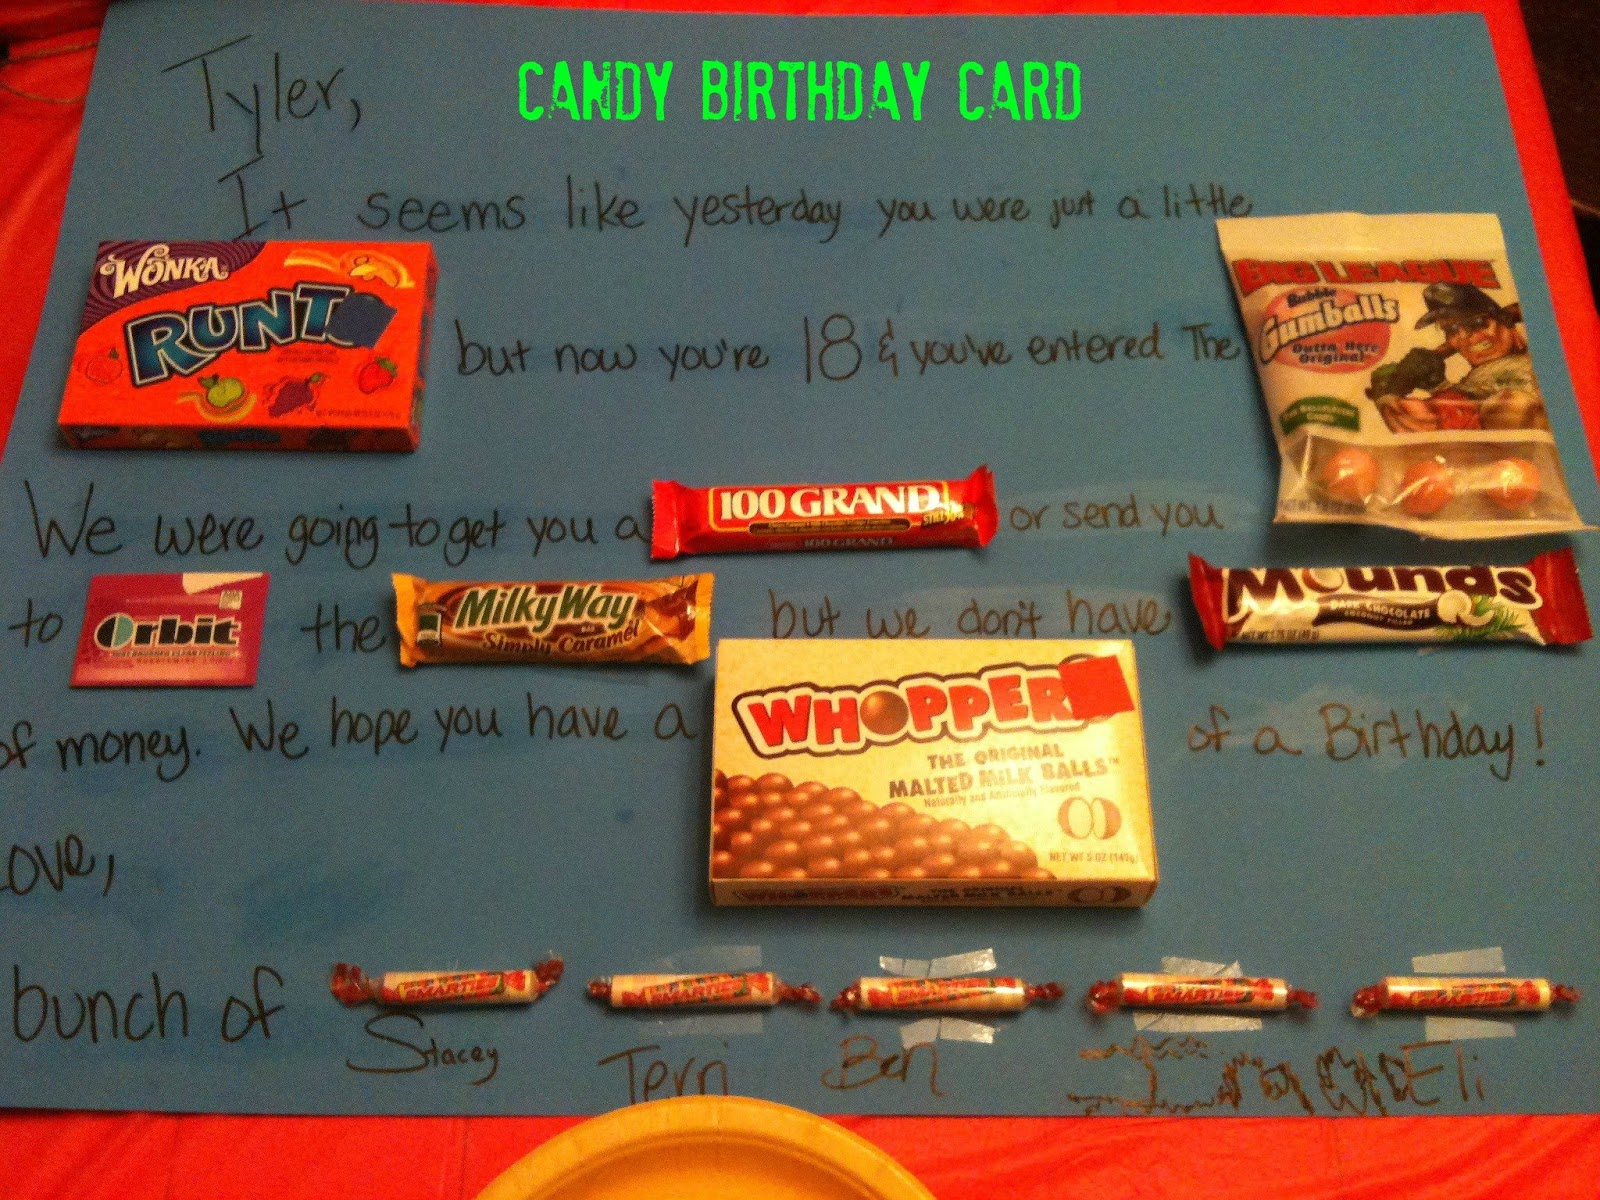 Creative parenting candy birthday card candy birthday card this past weekend we celebrated my nephews 18th birthday i had no idea what to get him and i had a very limited budget bookmarktalkfo Images